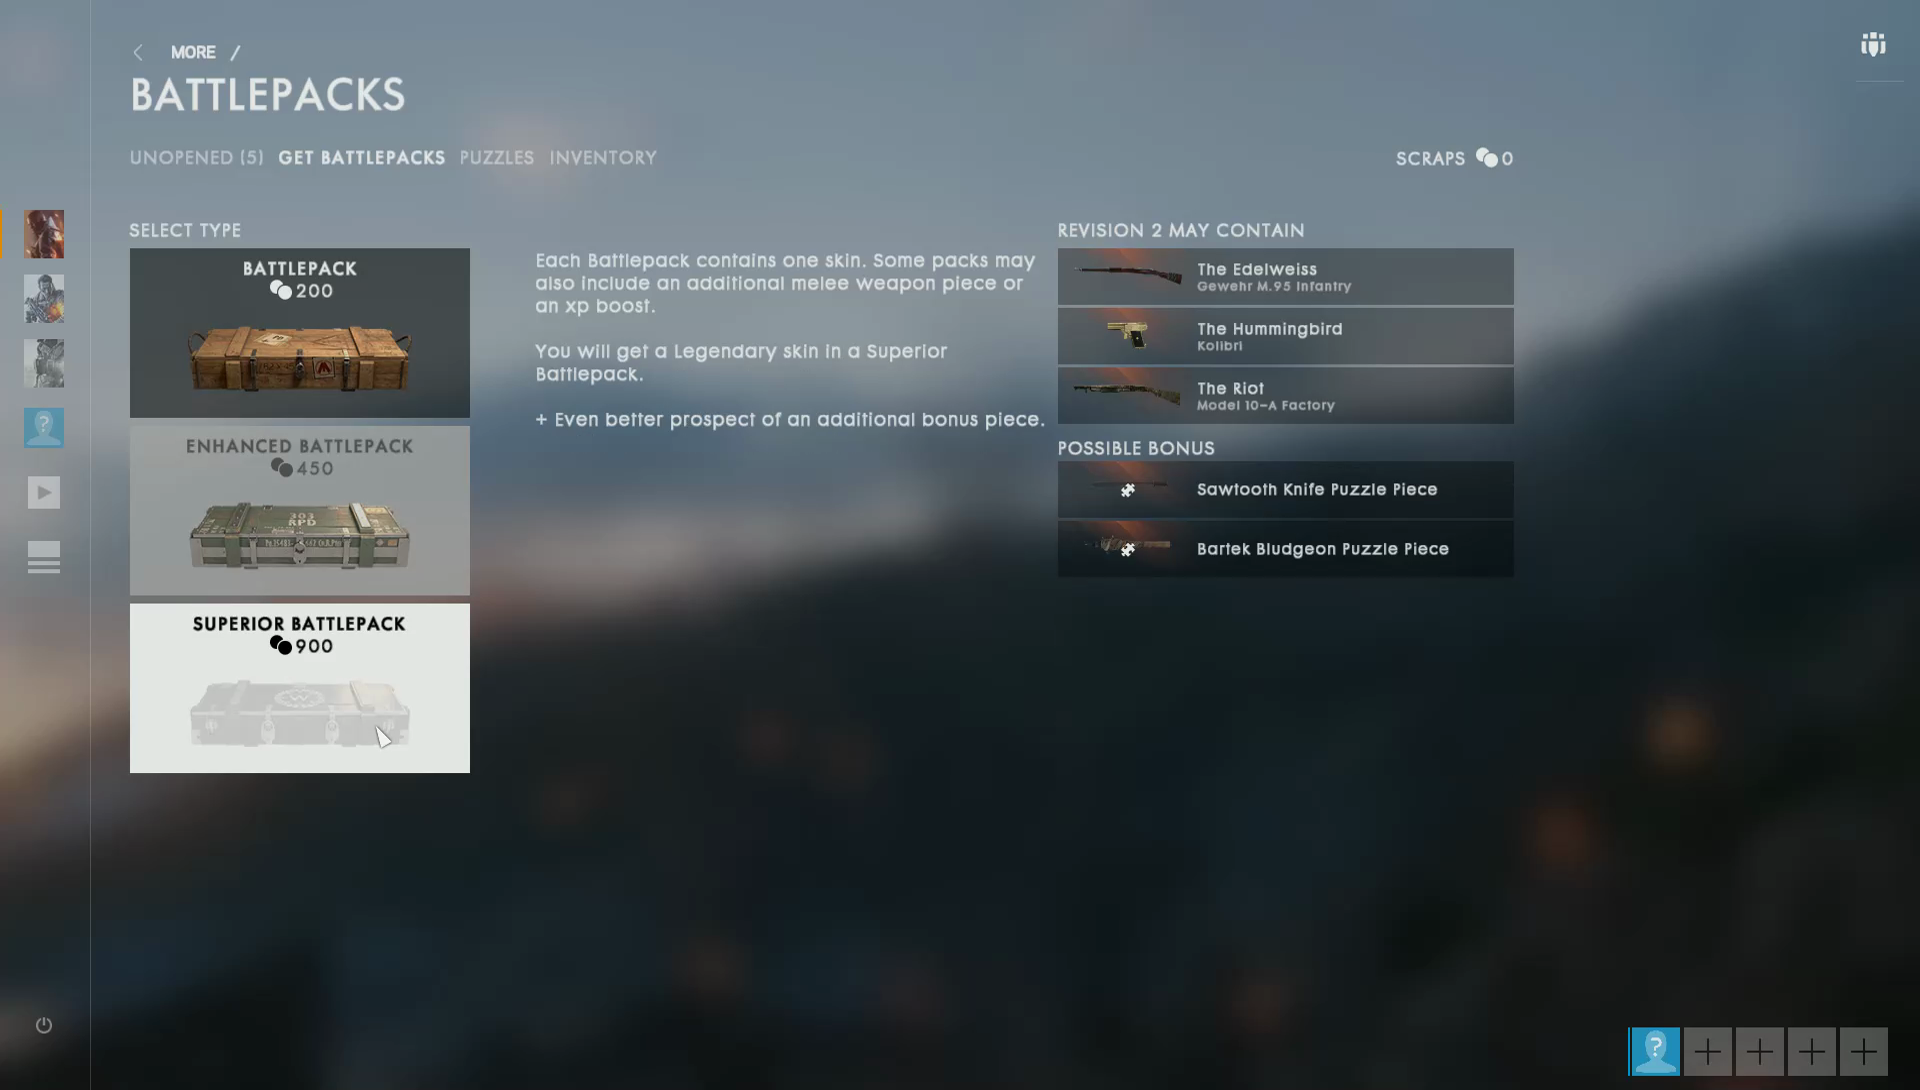 Battlefield 1 - Guide to Battlepacks, Scrap, and Puzzle Pieces | USgamer